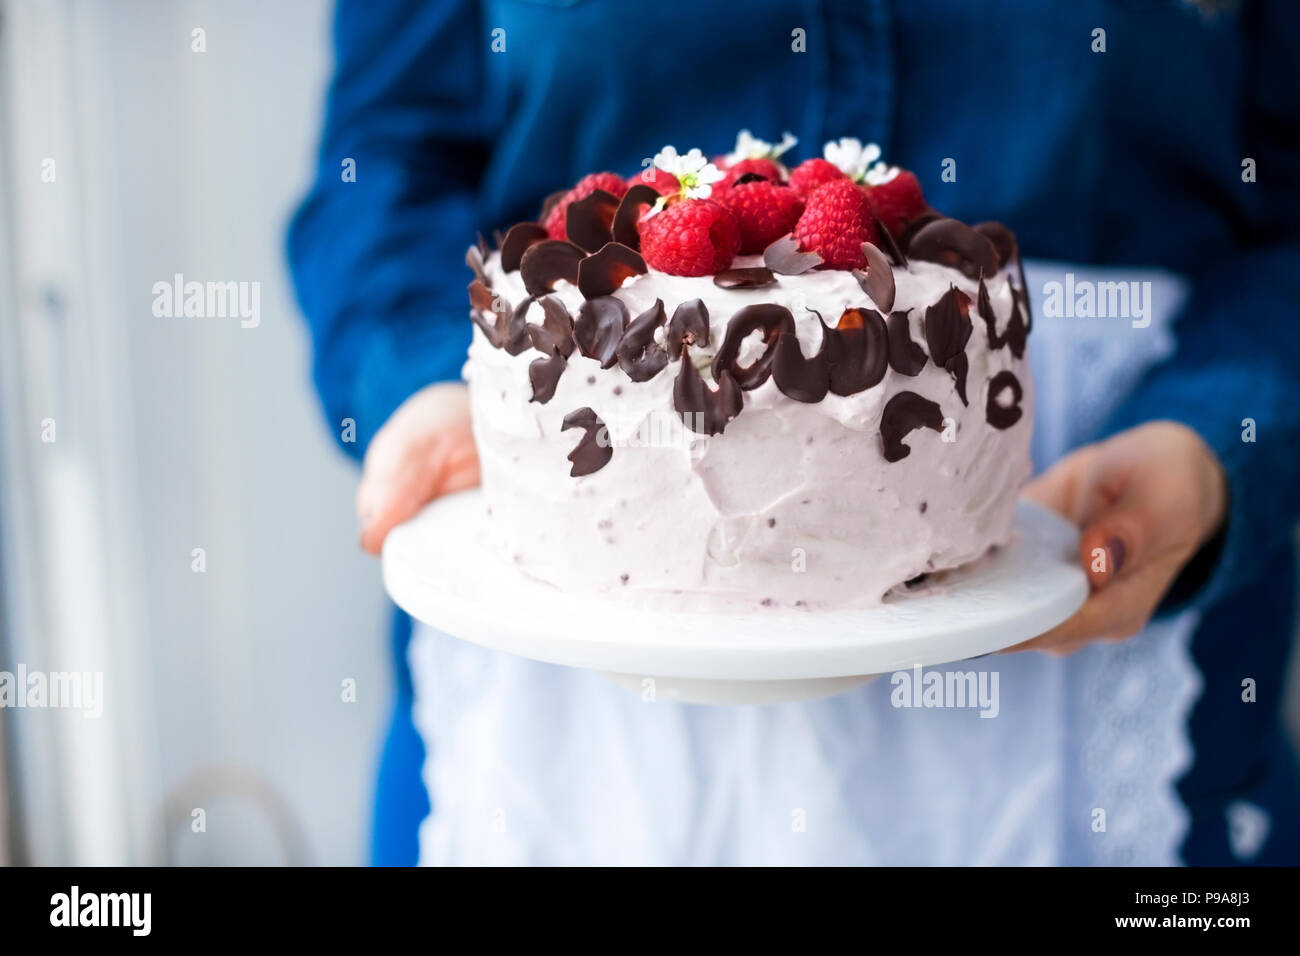 A woman is holding a beautiful cake with pink cream and fresh raspberry berries, decorated with chocolate. Calorie food. Free space for text or postcard - Stock Image